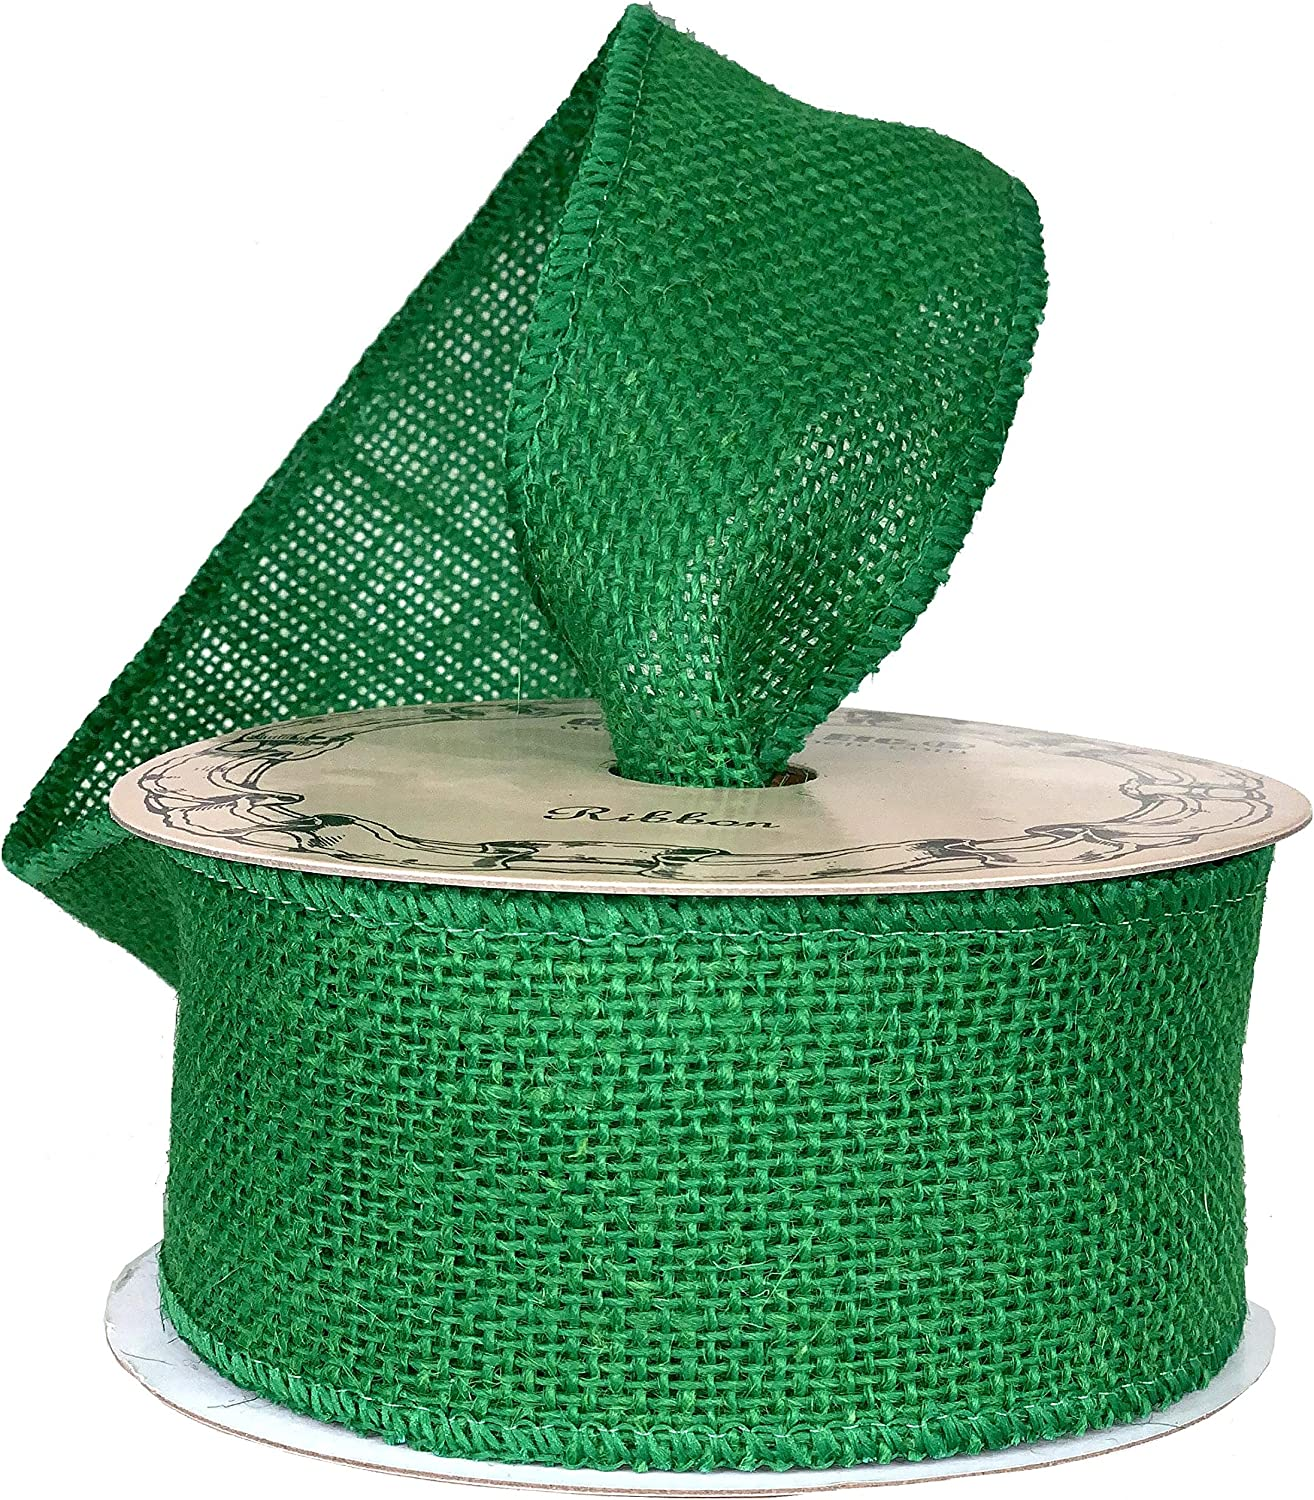 """Emerald Green Fabric Burlap Ribbon - 2 1/2"""" x 10 Yards, Wired Edge, Christmas Tree Ribbon for Crafts, Rustic Jute Decor, St. Patrick's Day, Easter, Easter, Holiday Decor, Wreaths, Garlands, Swags"""